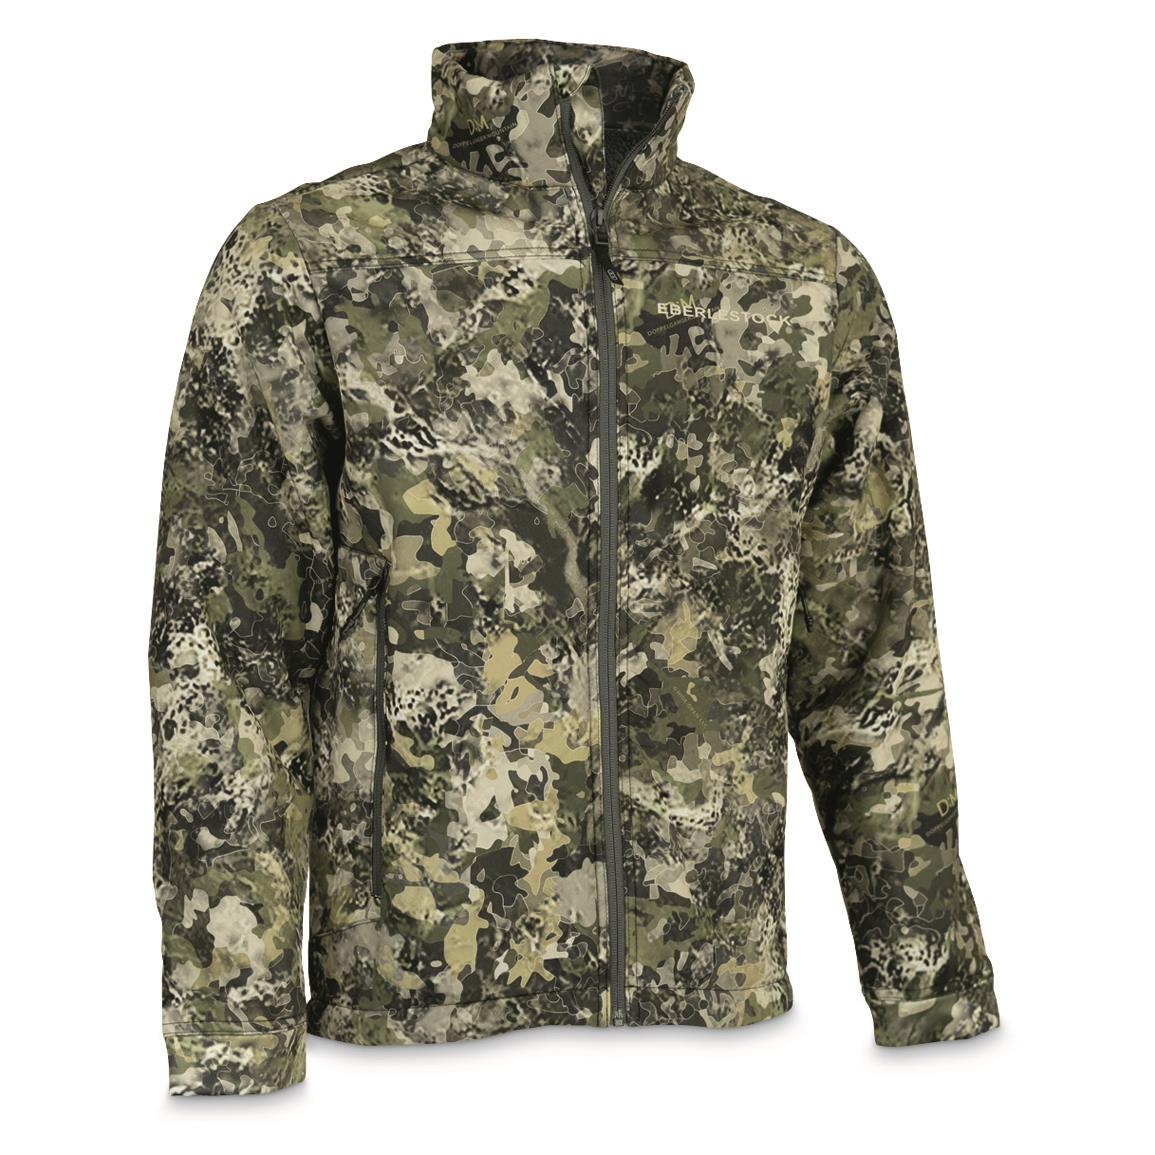 Eberlestock Men's Cache Peak Fleece Jacket, Mountain